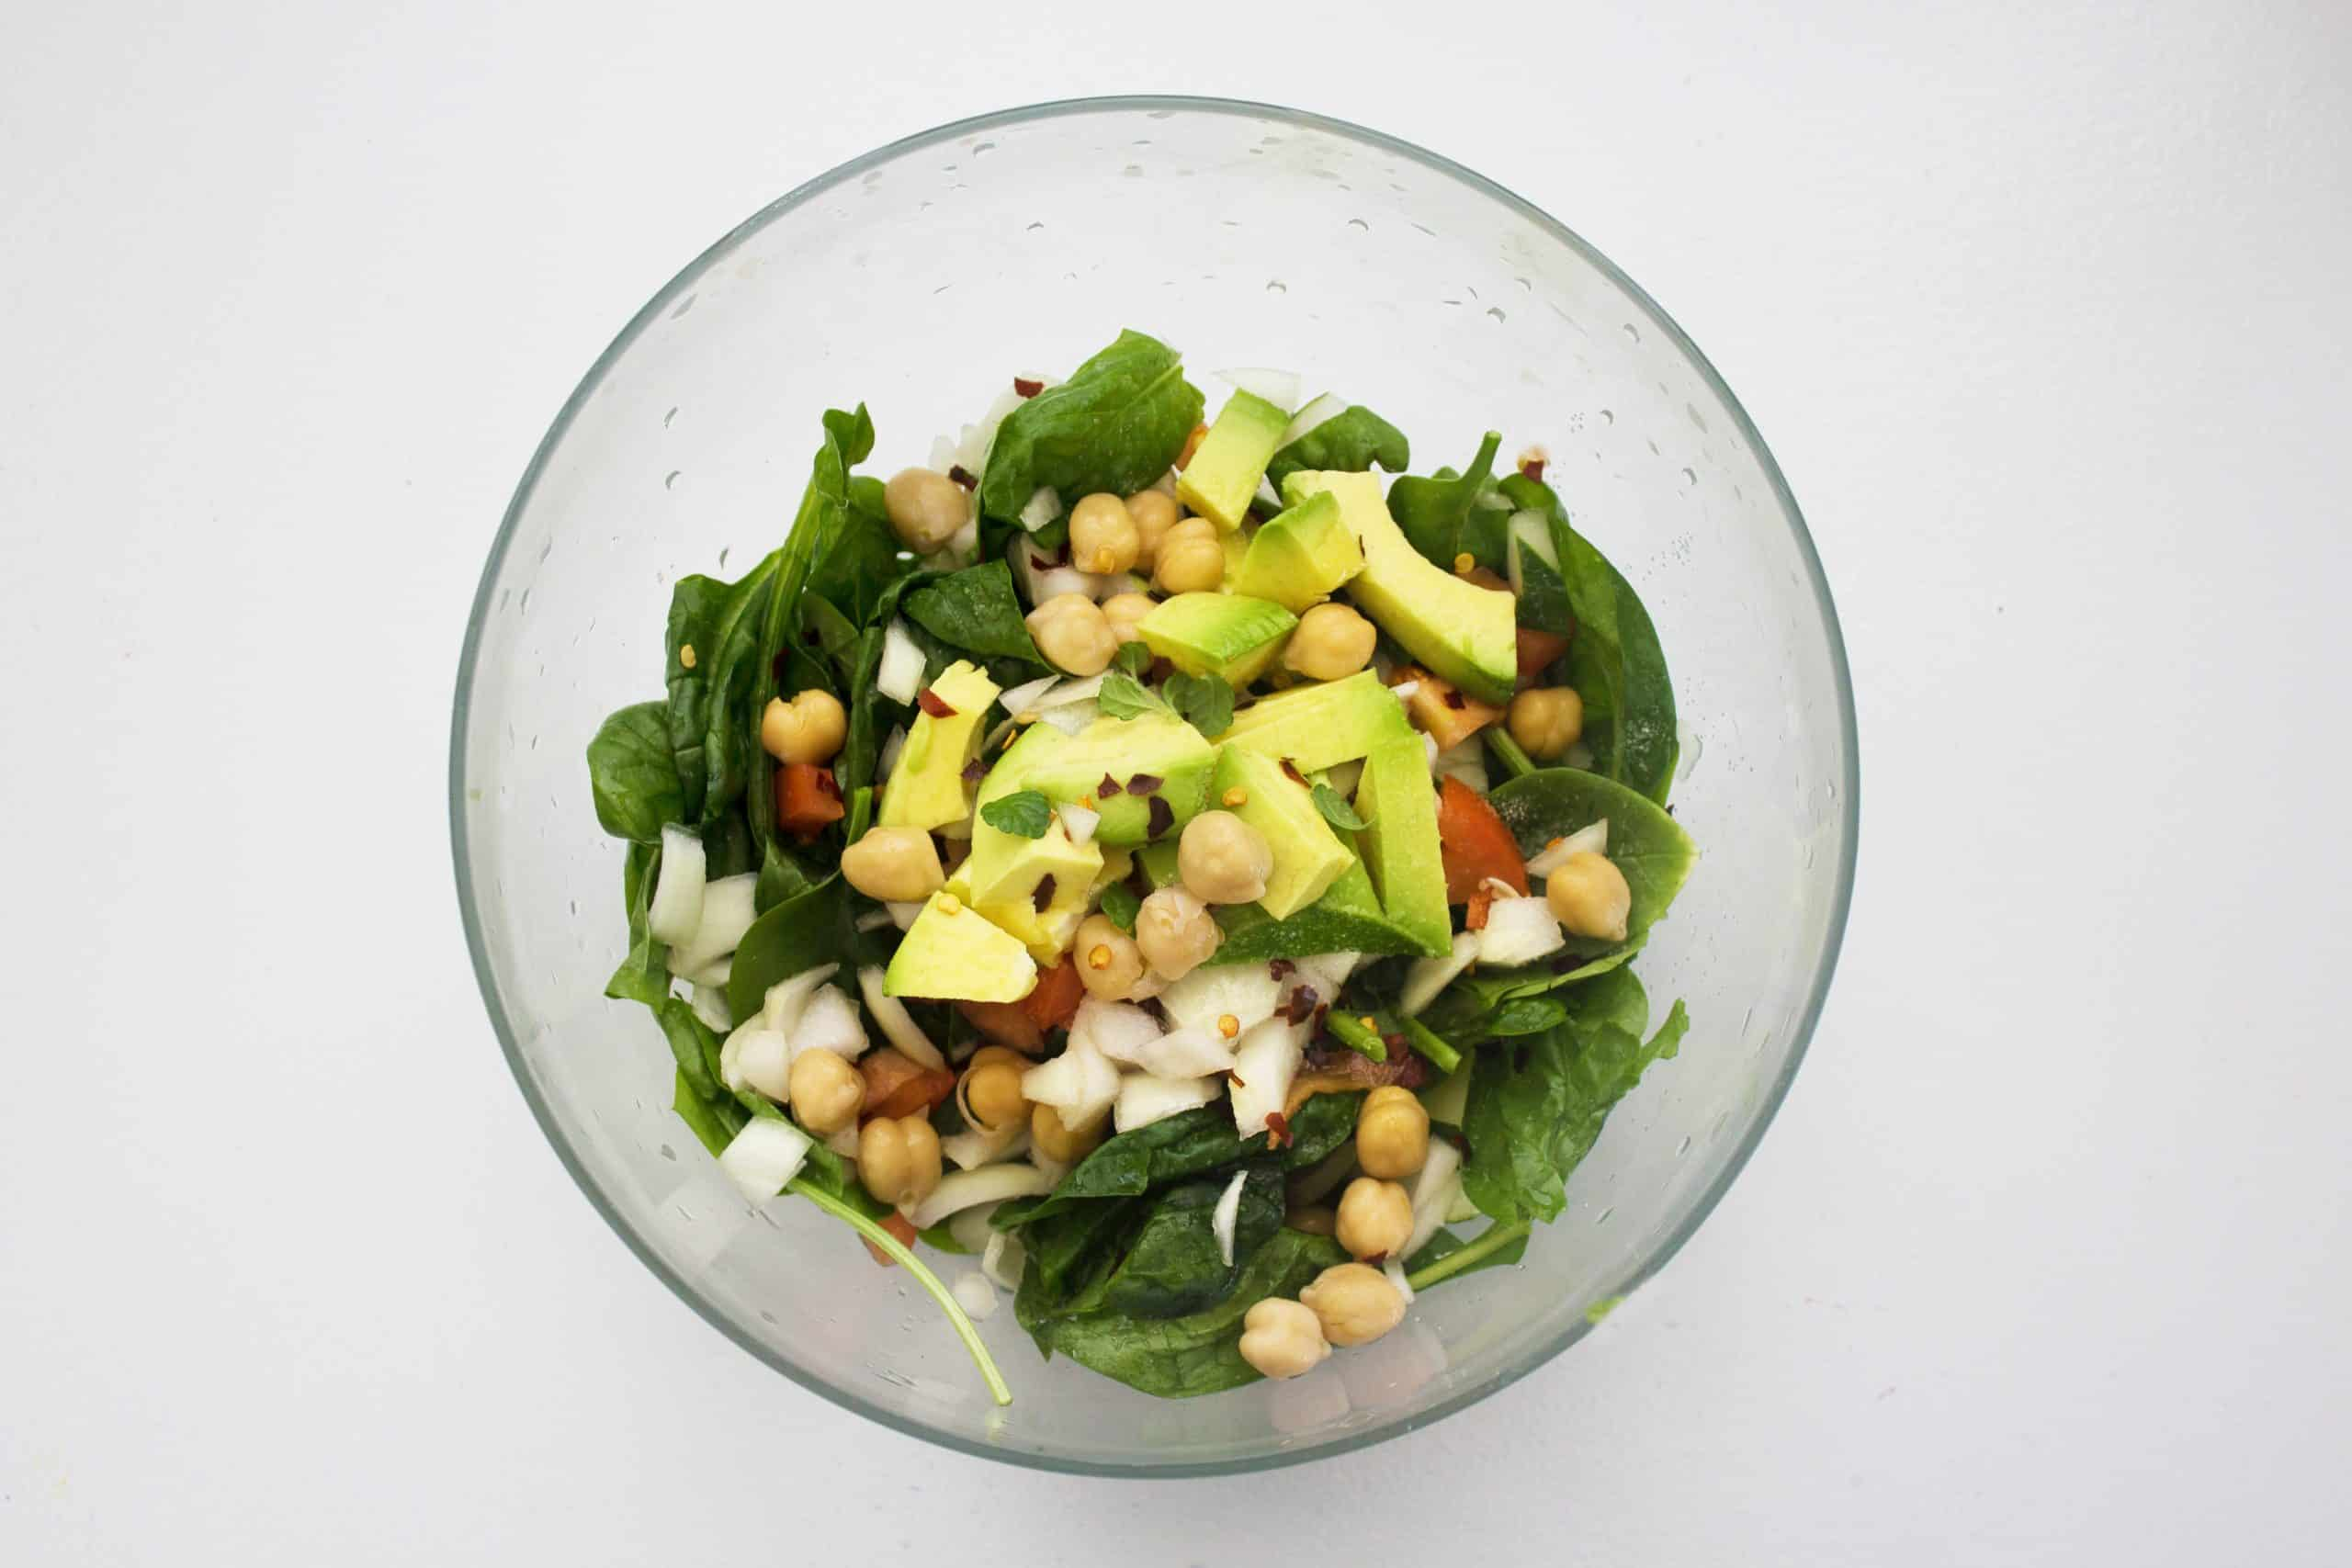 What Is A Good Vegan Diet To Follow